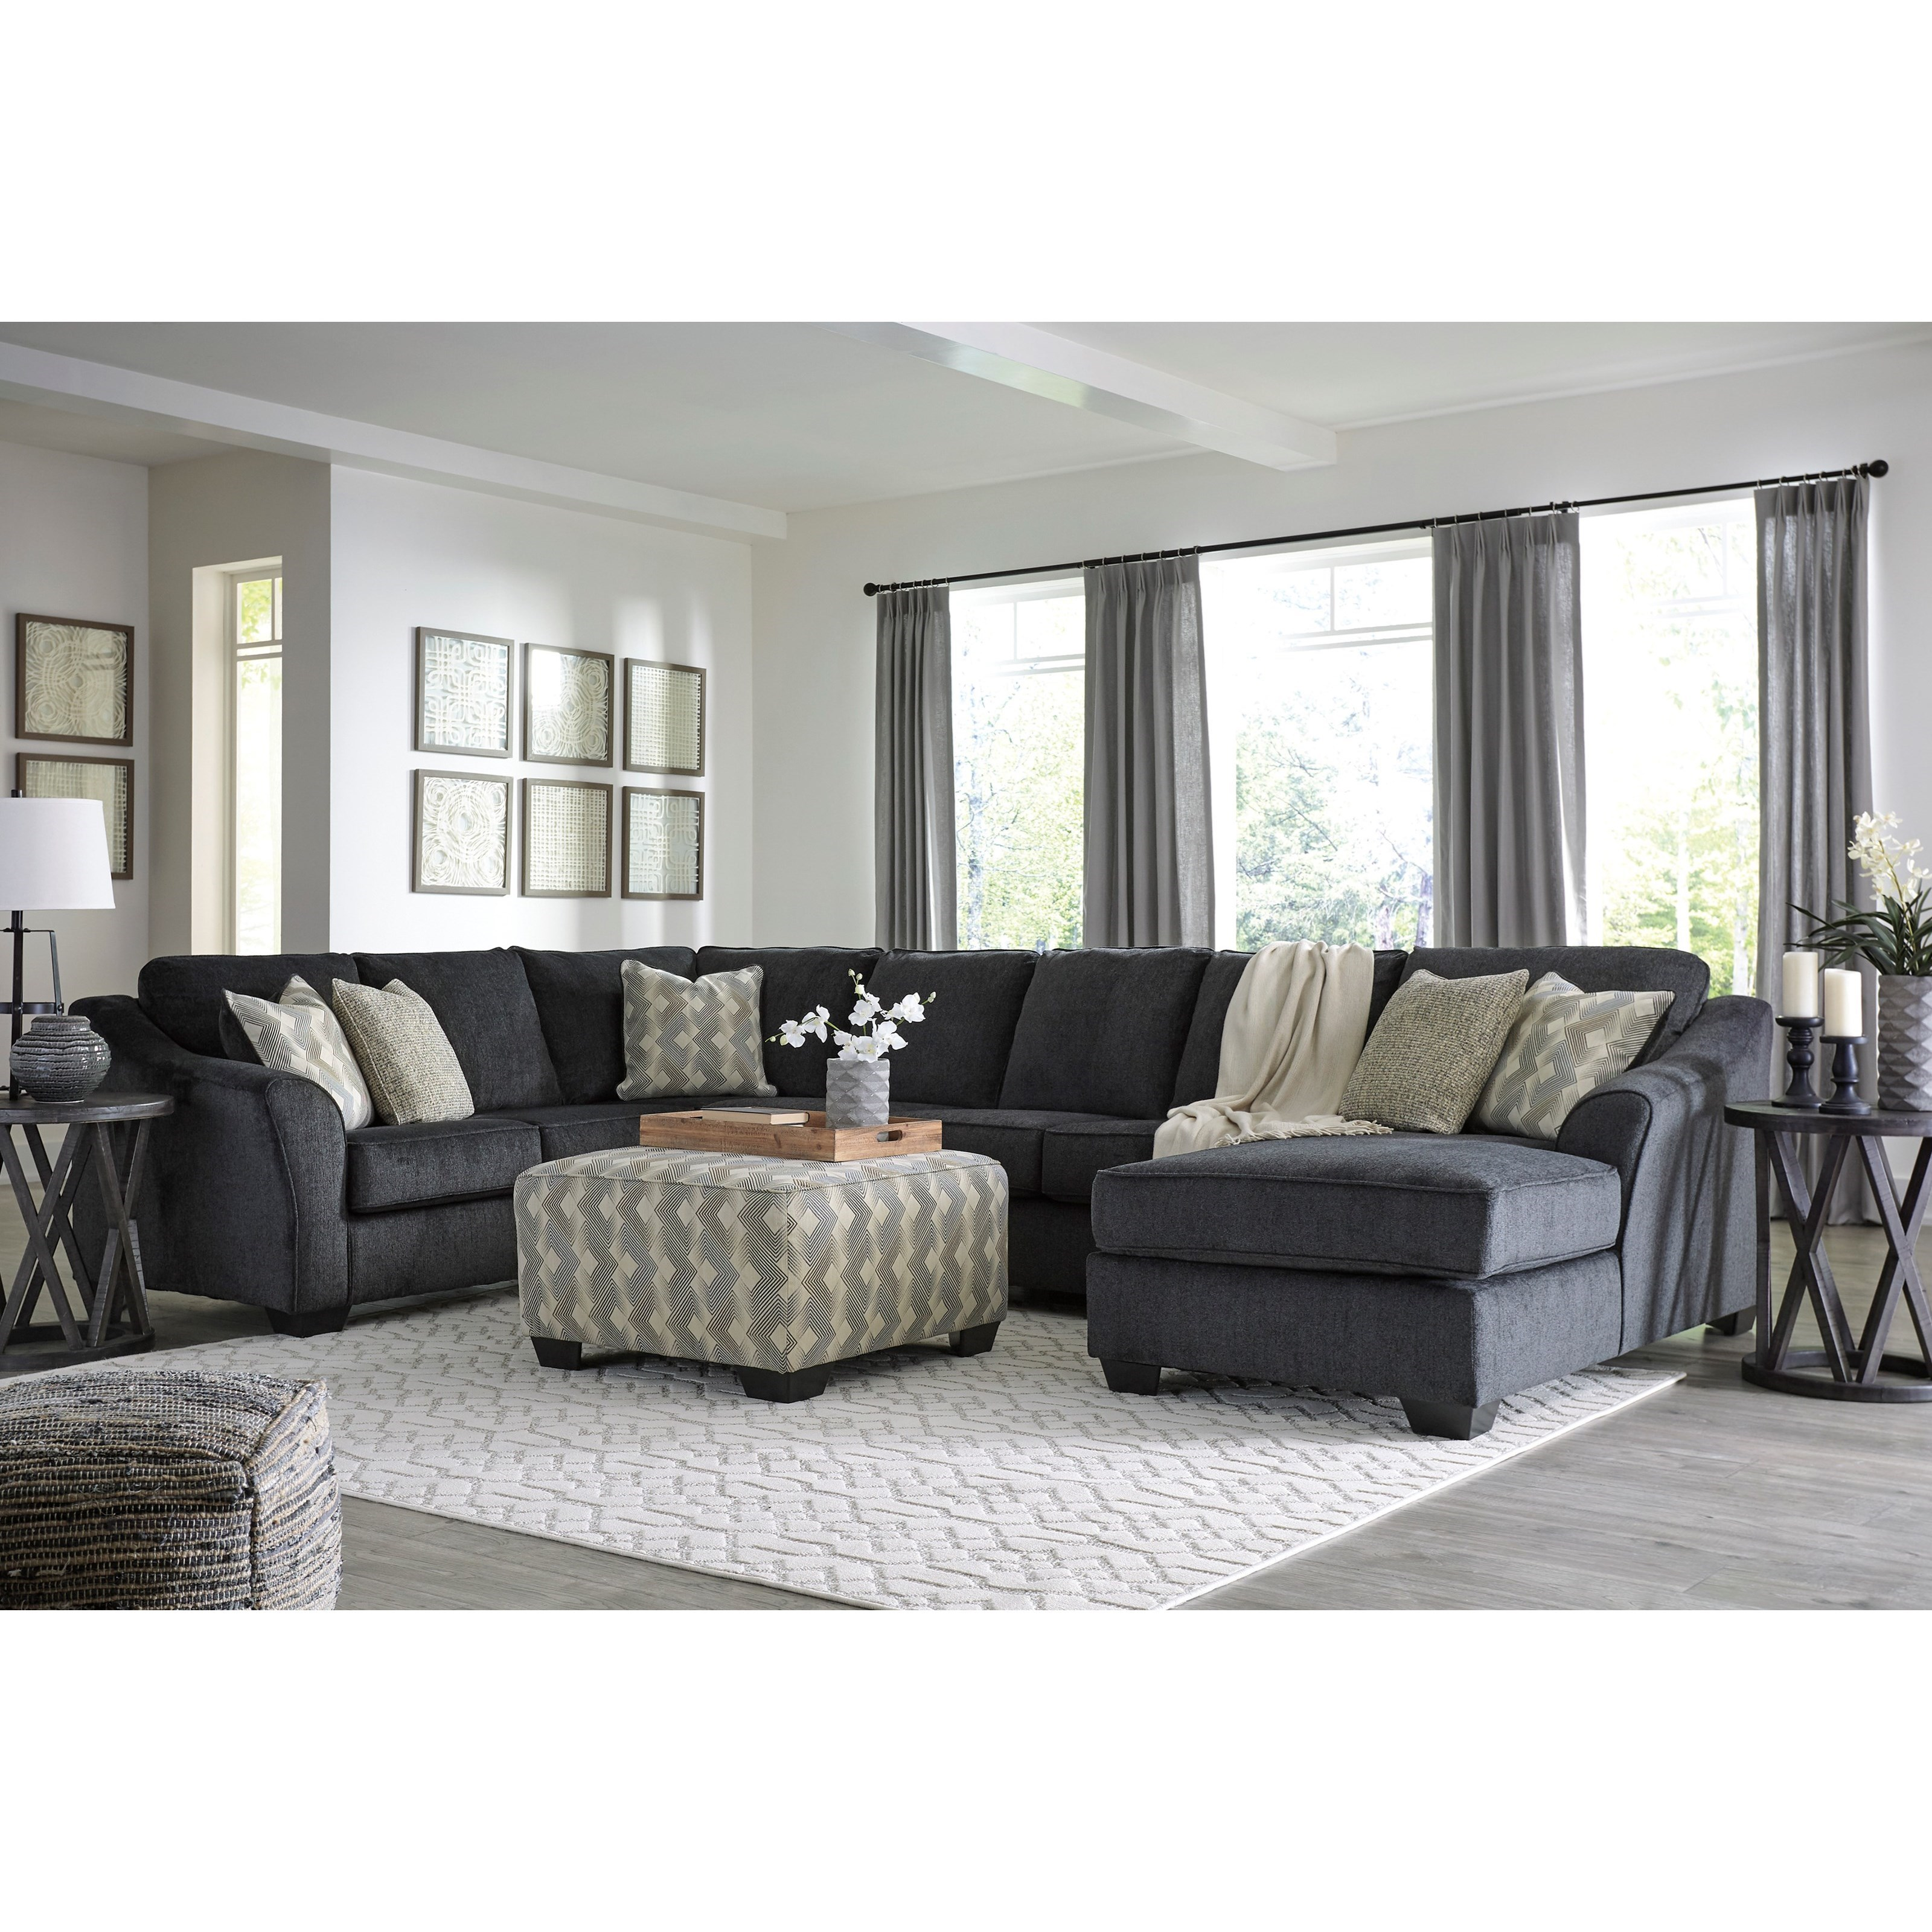 Eltmann Stationary Living Room Group by Ashley (Signature Design) at Johnny Janosik